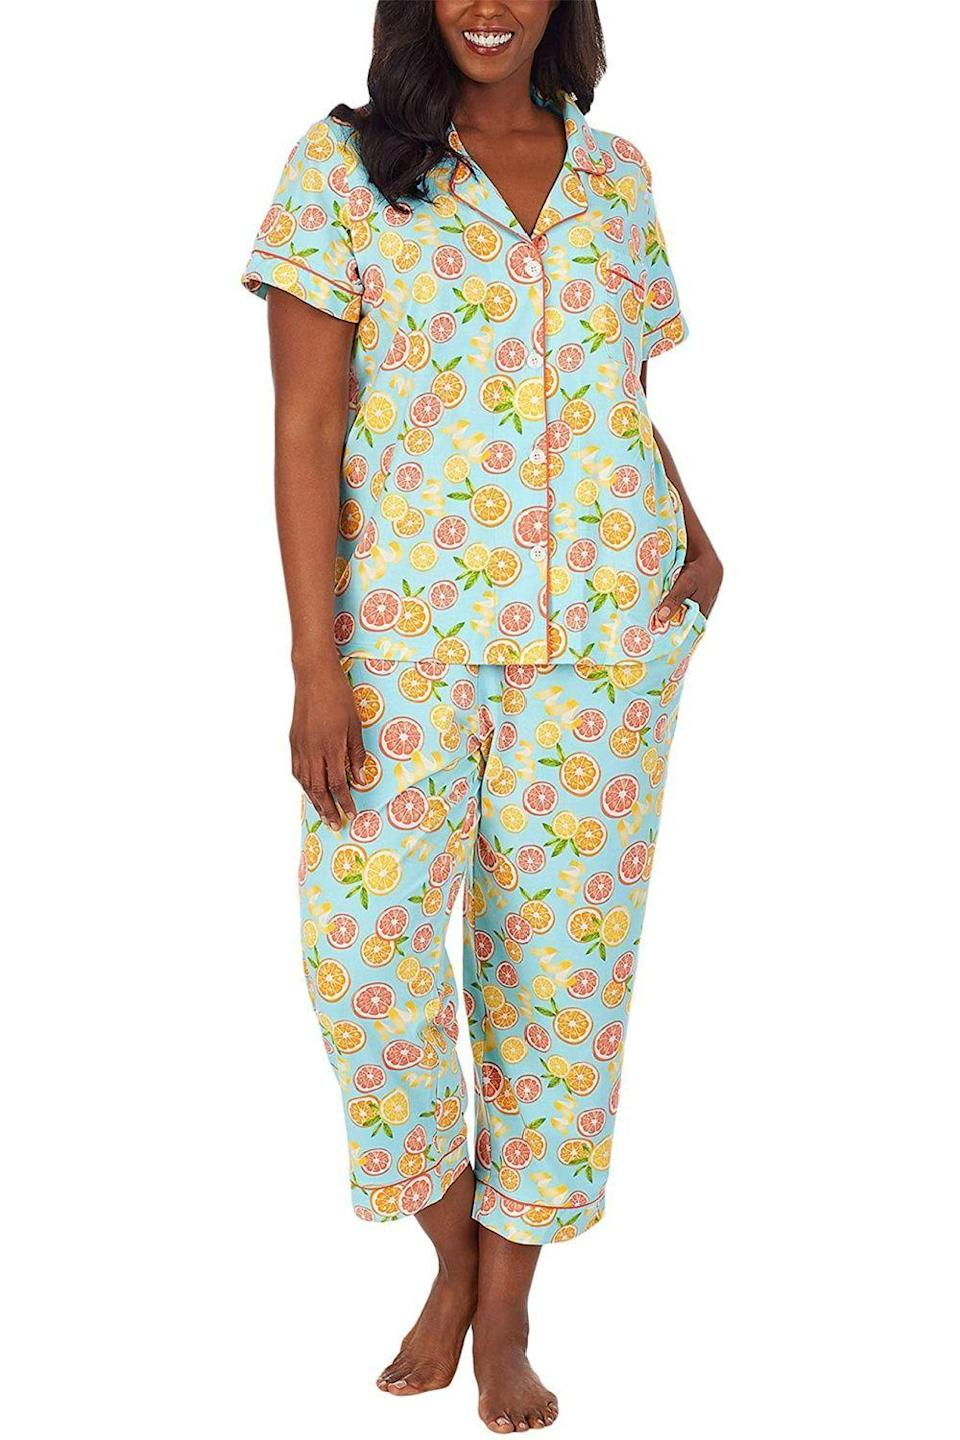 "<p><strong>BedHead Pajamas</strong></p><p>amazon.com</p><p><strong>$108.00</strong></p><p><a href=""https://www.amazon.com/dp/B08V4S2G9V?tag=syn-yahoo-20&ascsubtag=%5Bartid%7C10049.g.20108306%5Bsrc%7Cyahoo-us"" rel=""nofollow noopener"" target=""_blank"" data-ylk=""slk:Shop Now"" class=""link rapid-noclick-resp"">Shop Now</a></p><p>Your mom will love swapping out her flannel winter PJs with this lightweight cotton short-sleeve top and cropped pants for spring and summer. </p>"